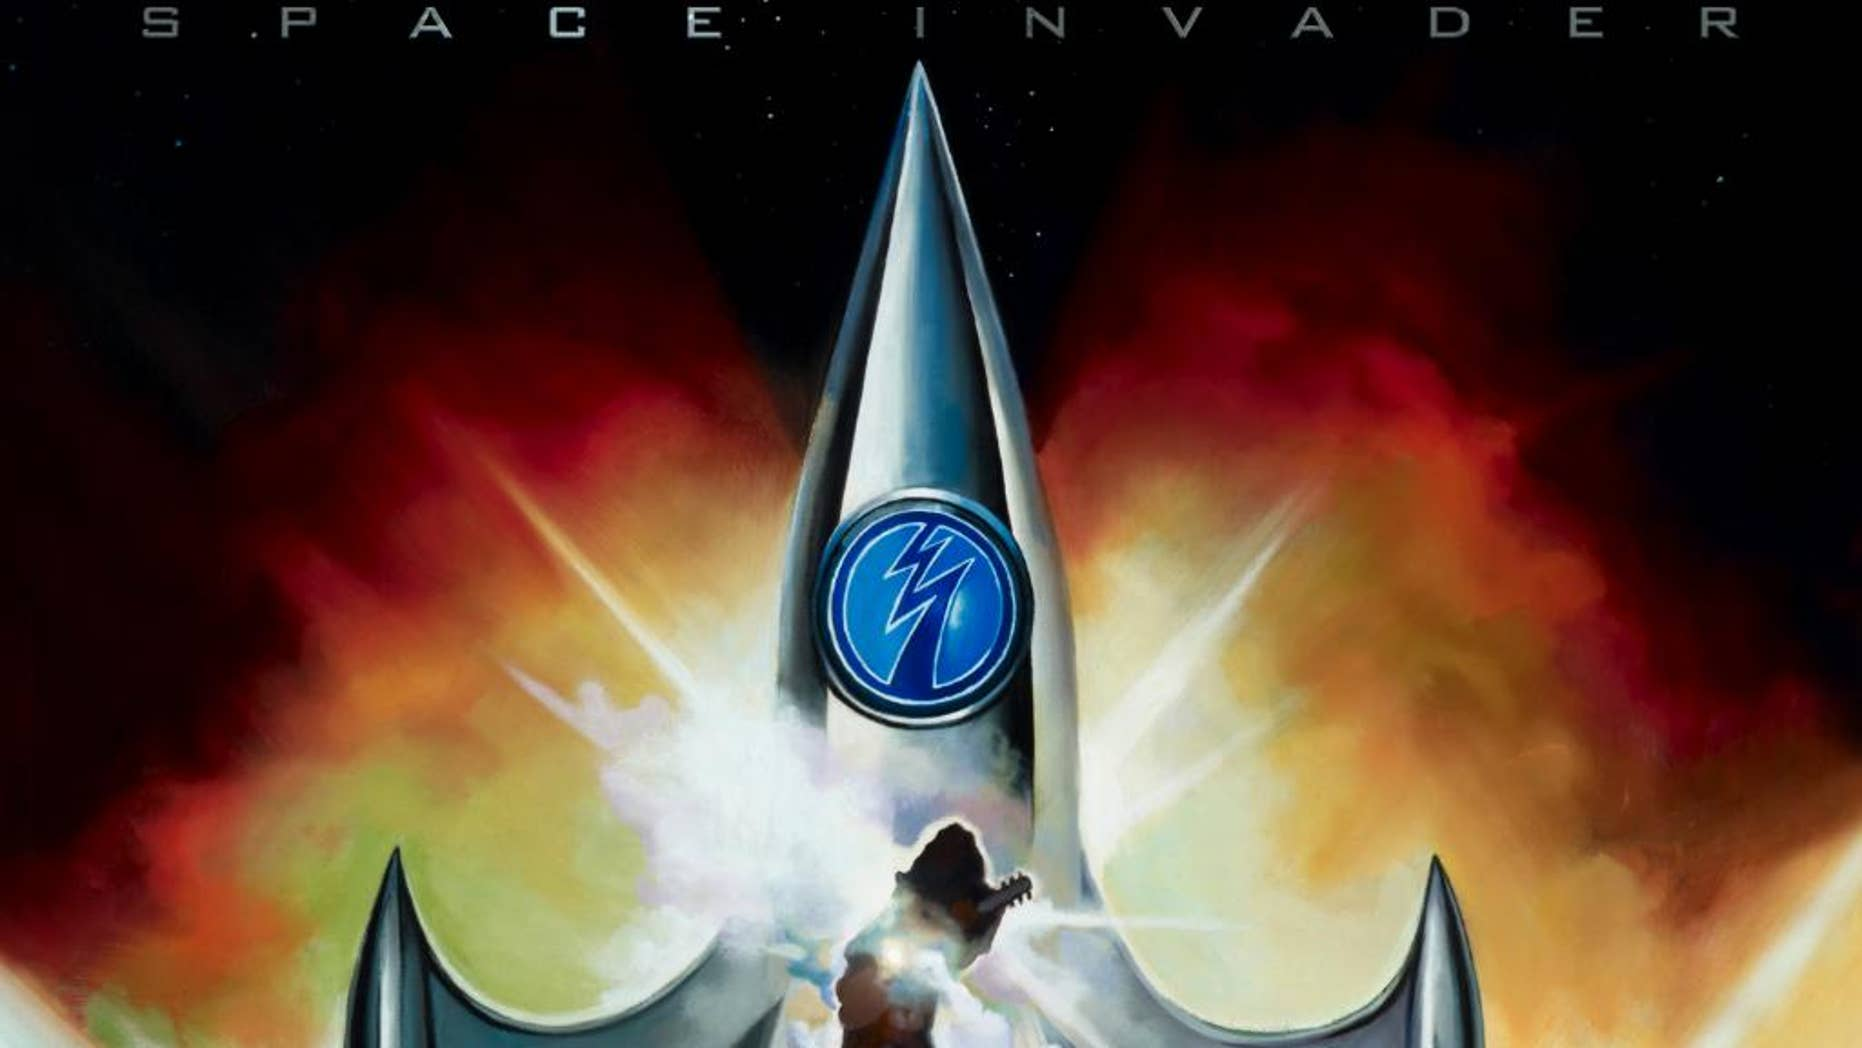 """This CD cover image released by eOne shows """"Space Invader,"""" by Ace Frehley. (AP Photo/eOne)"""